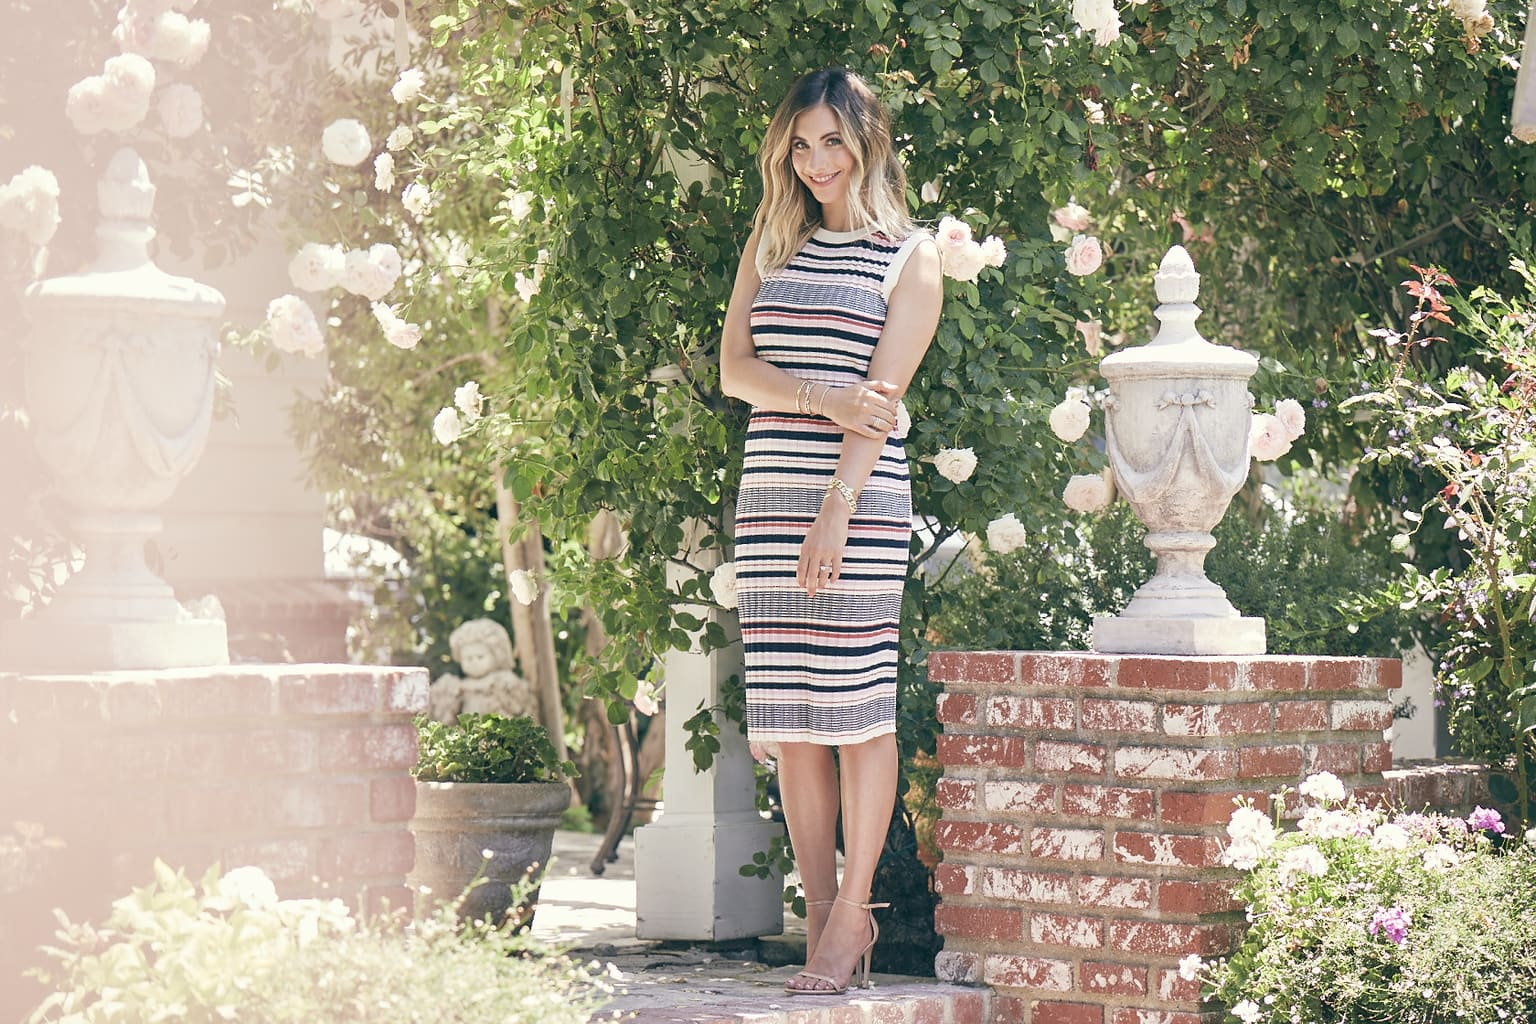 Emily from Cupcakes and Cashmere wears a multicolored striped dress